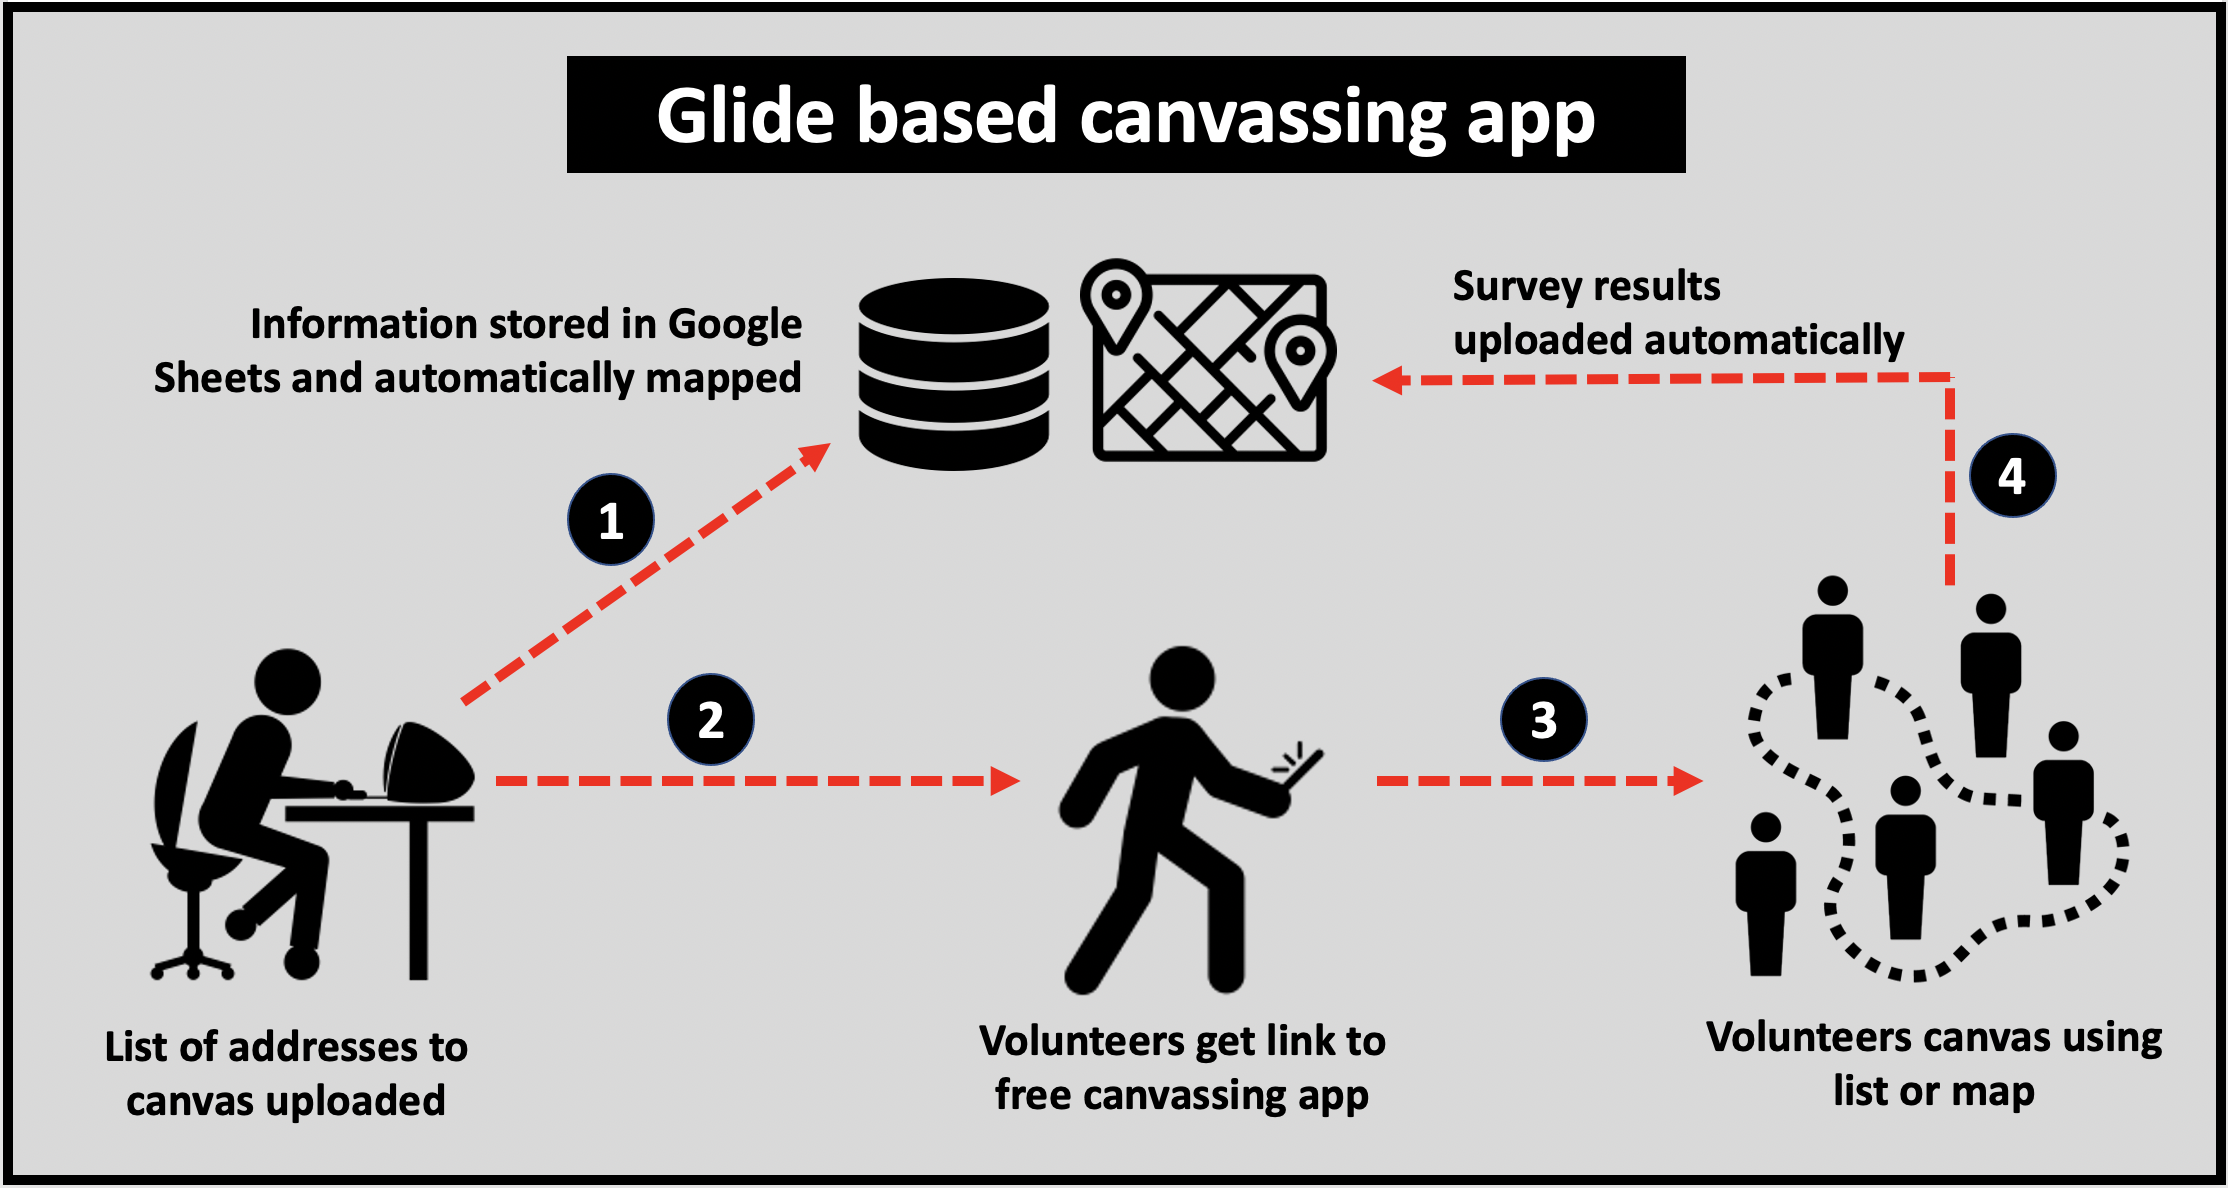 Free canvassing app designed by DemLabs using Glide technology.